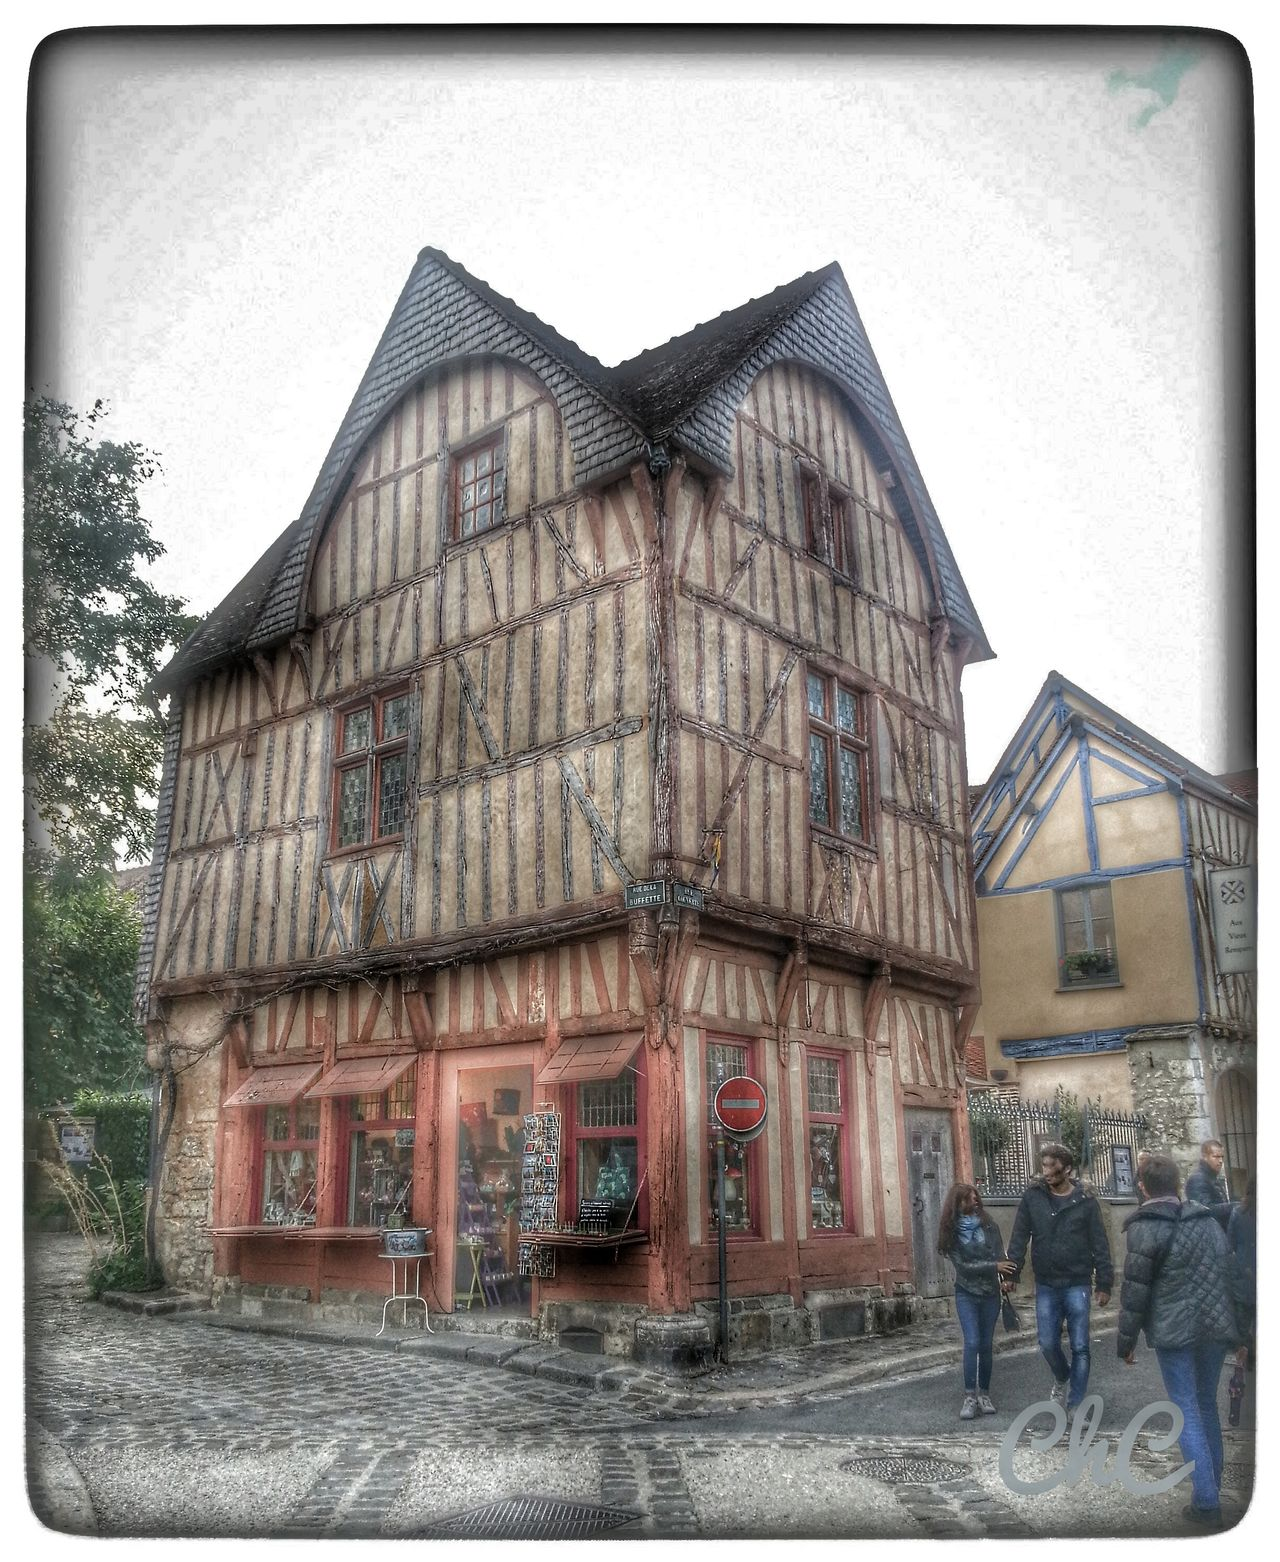 Taking Photos Old Town Vieille Maison Myfavoriteplace Hdr_Collection Old House Old Shop à Provins en France 🏡 🏠 🏡